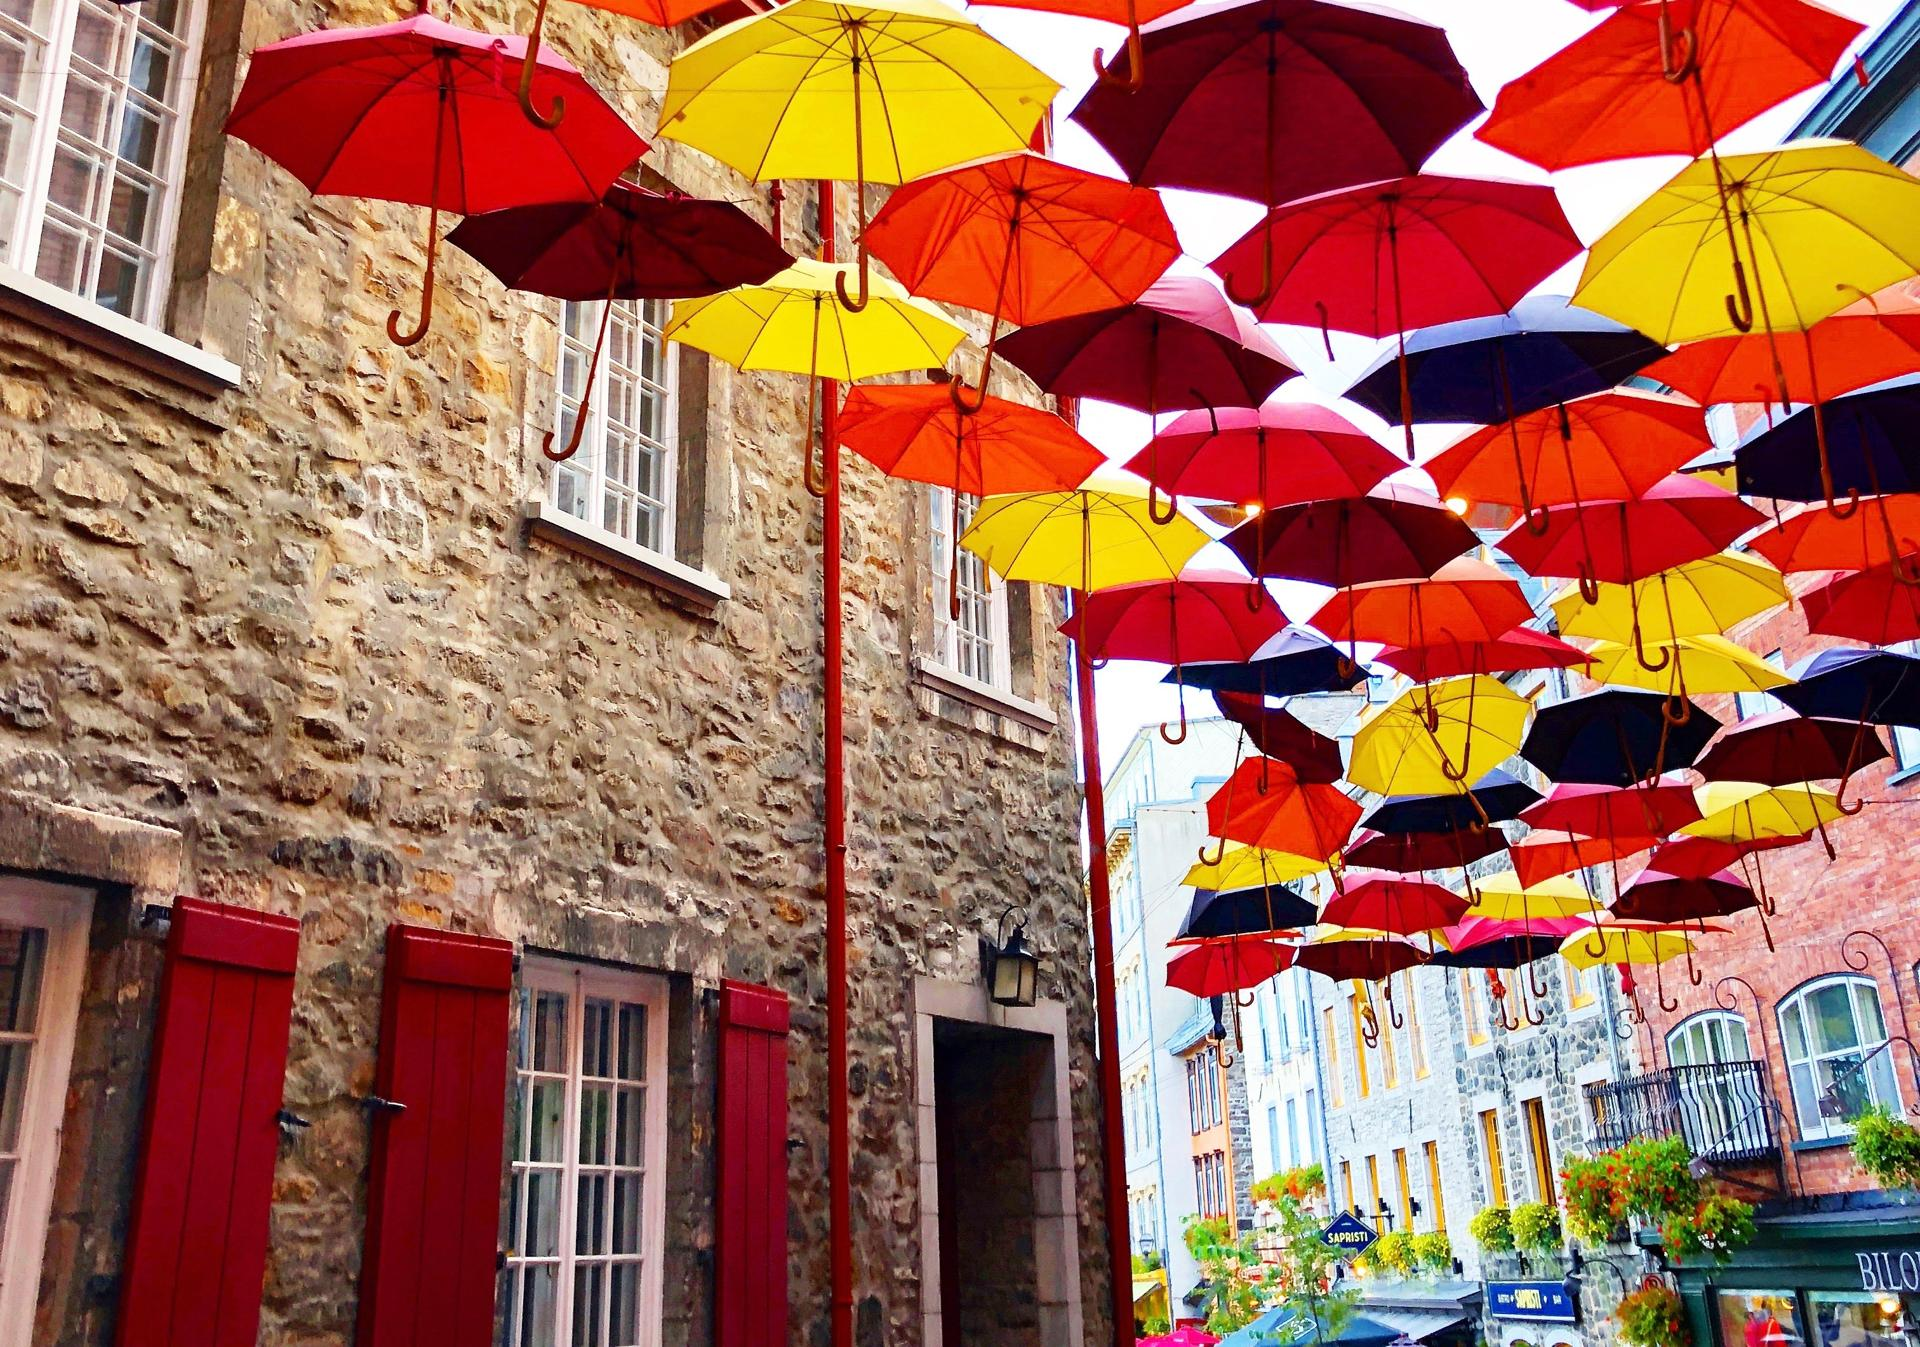 QUEBEC CITY, Sept. 29. I've spotted these umbrella art displays in several cities, but I was particulary fond of this one in Quebec. It seemed like a perfect match to the season and surrounding colors.